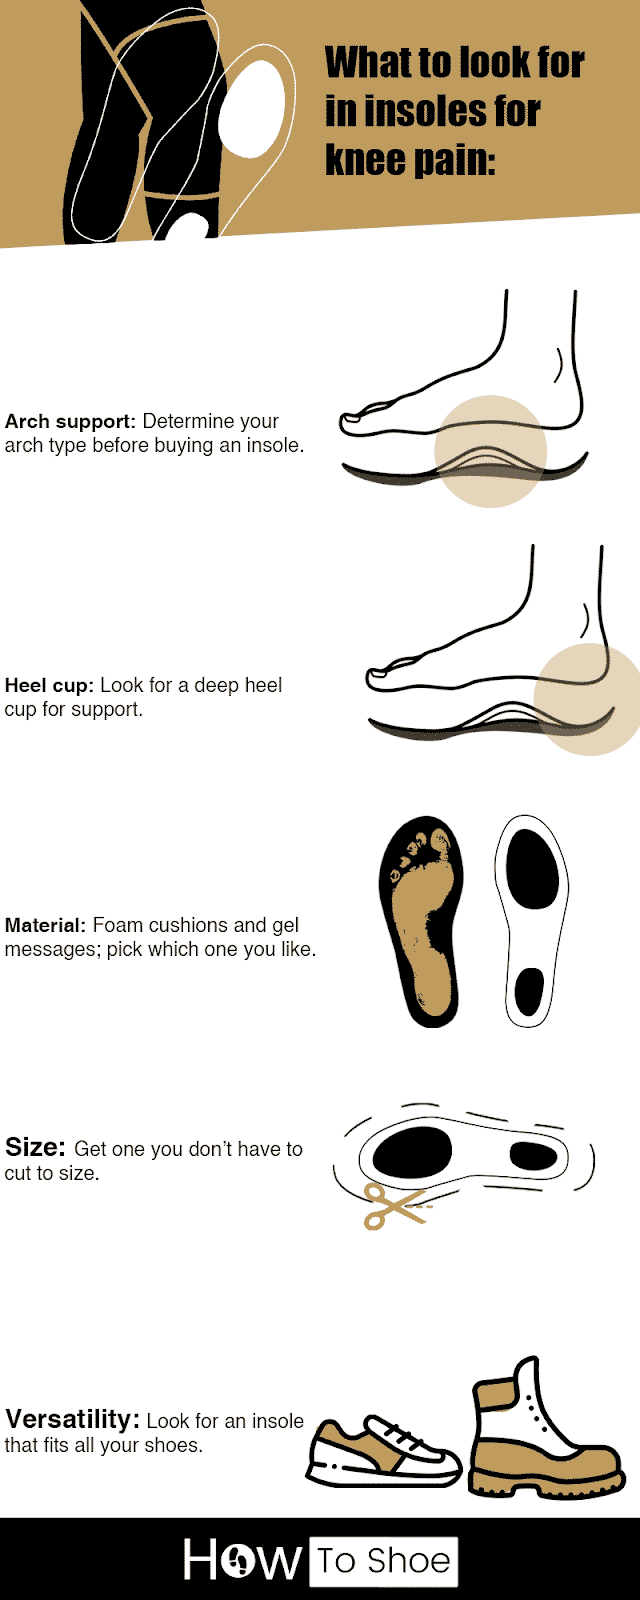 Best insoles for knee pain